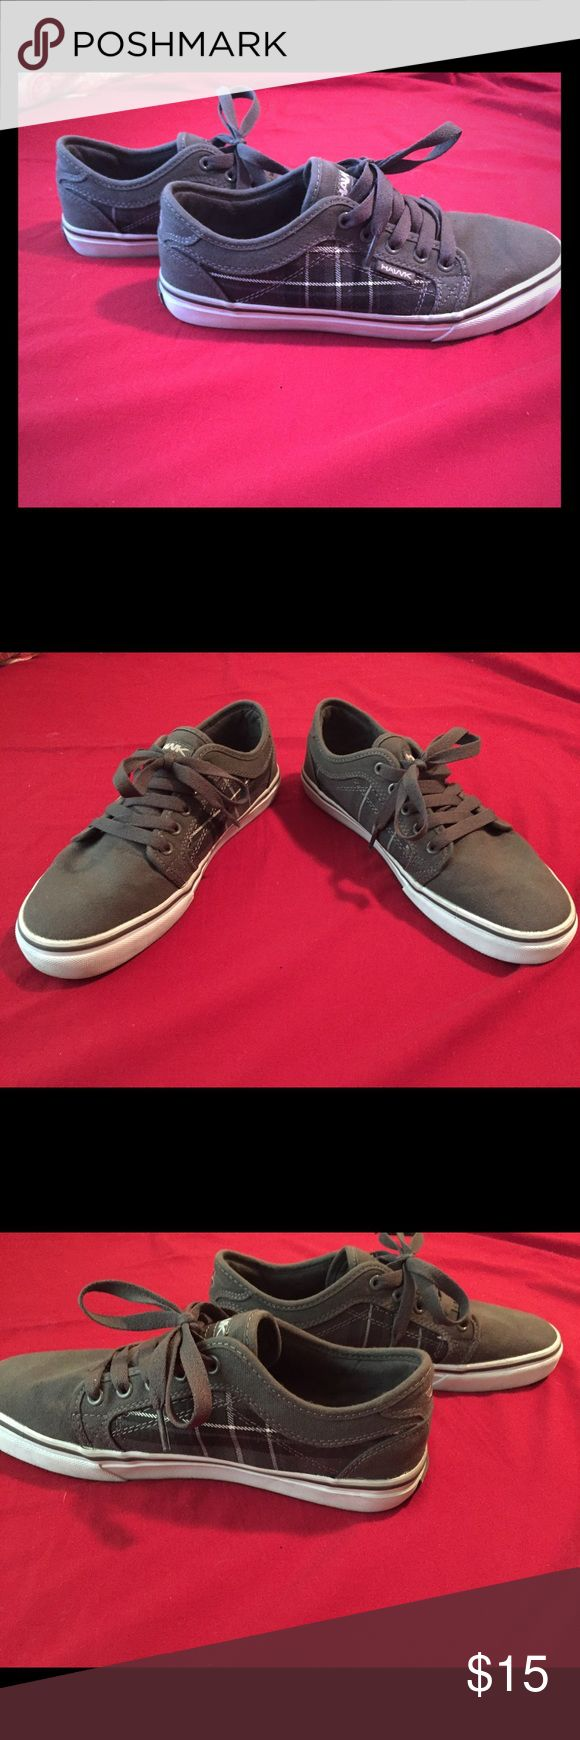 Tony Hawk Sneakers Good condition. Some dirt/ scuffing on back on the heel mainly. Still very comfortable! Tony Hawk Shoes Sneakers